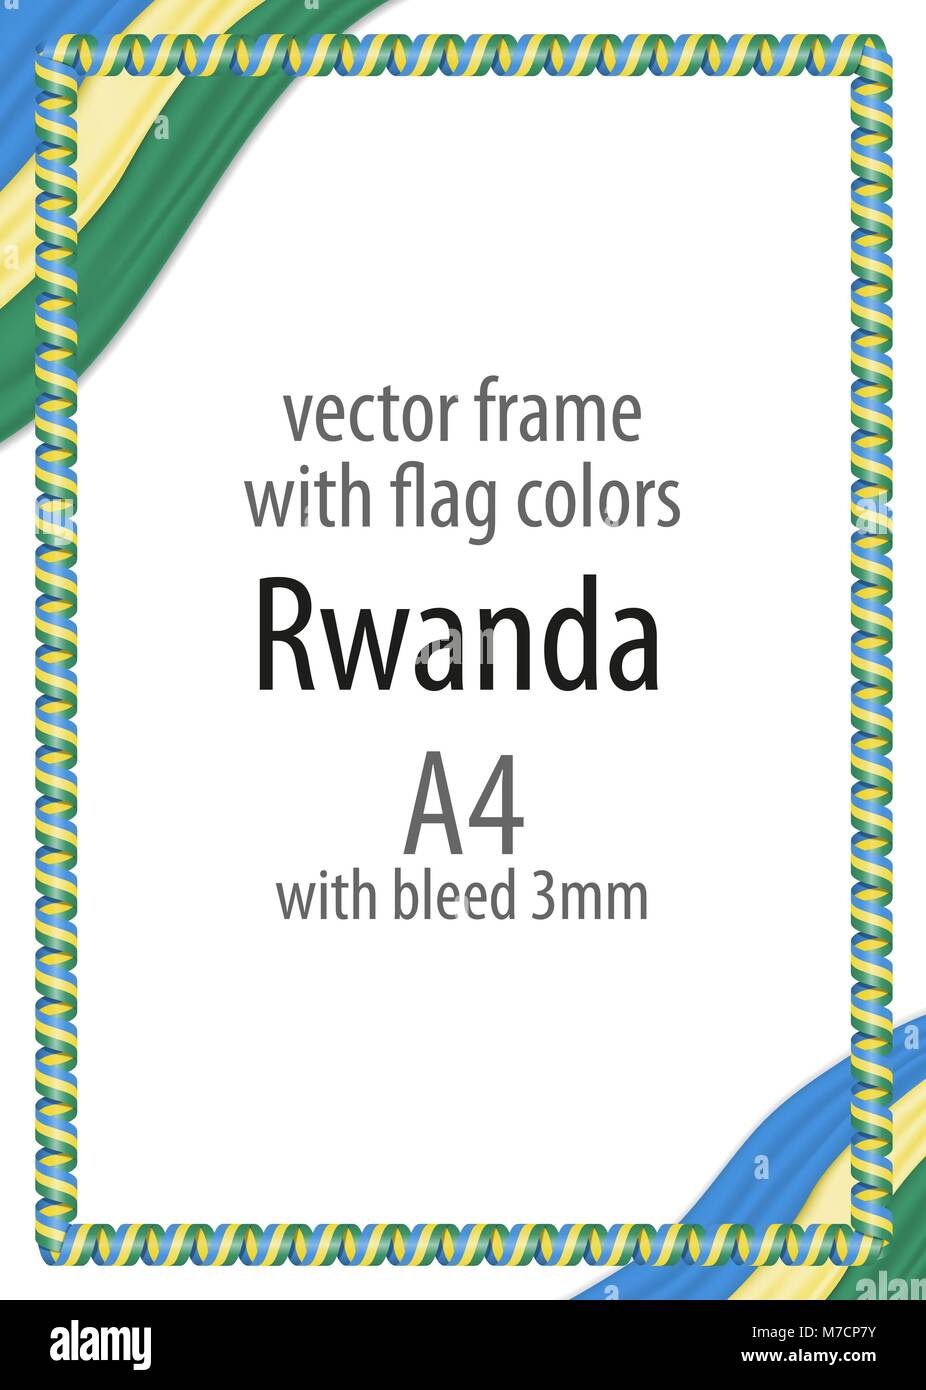 Frame and border of ribbon with the colors of the Rwanda flag - Stock Vector